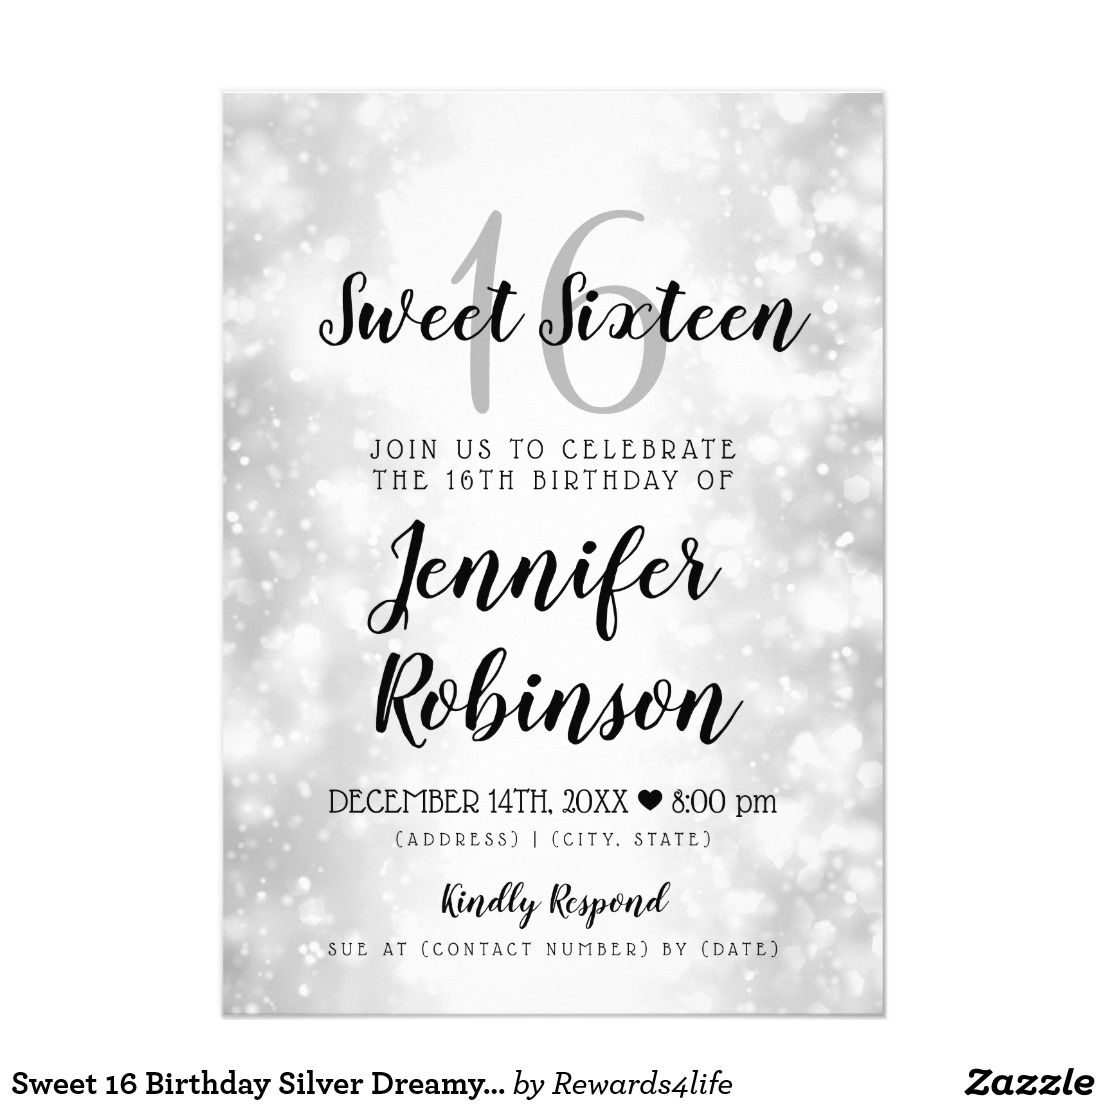 Sweet 16 Birthday Silver Dreamy Wonderland Card Elegant Classy